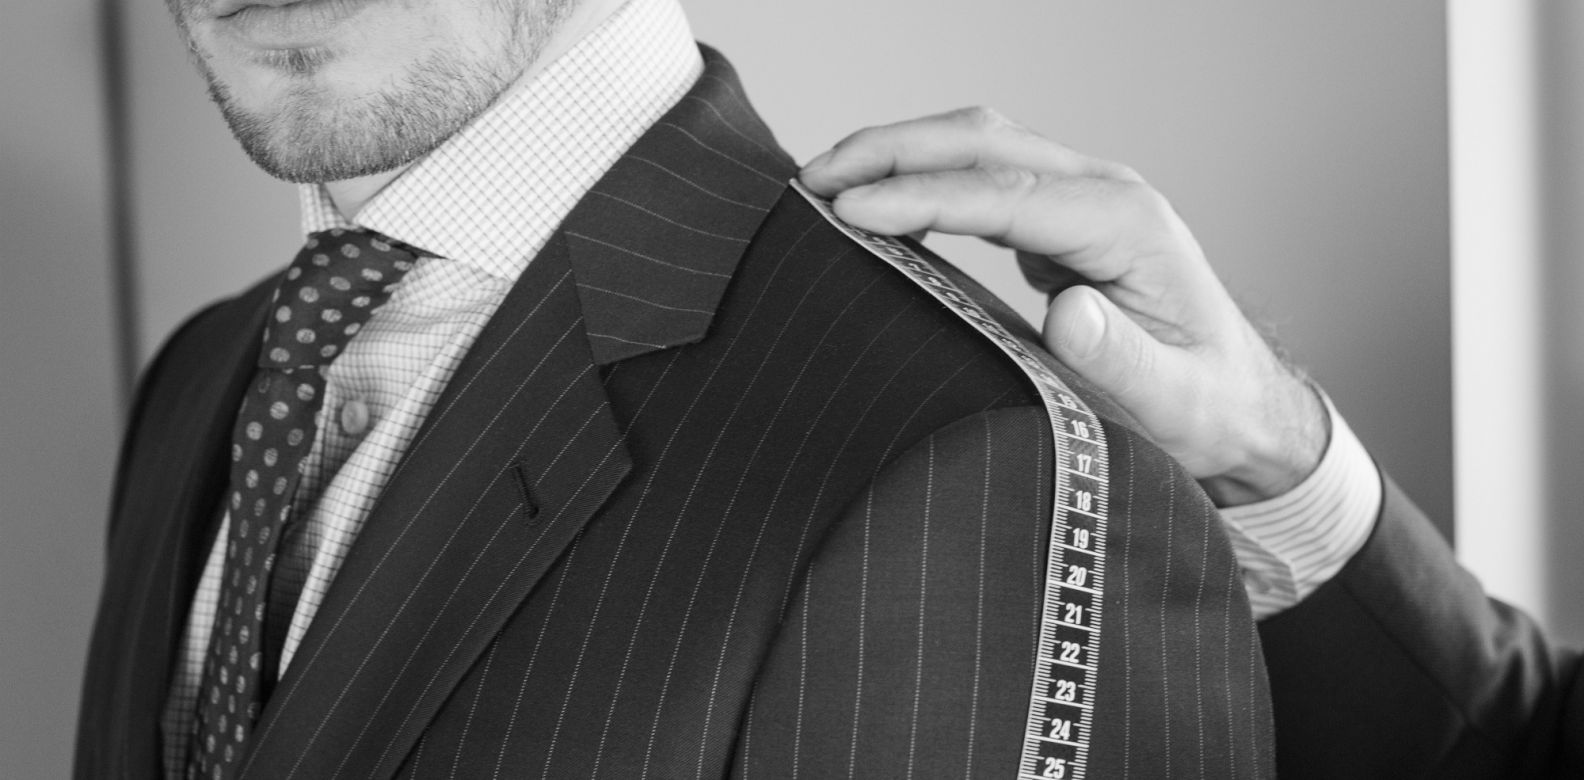 Designer Alterations launches Made to Measure service